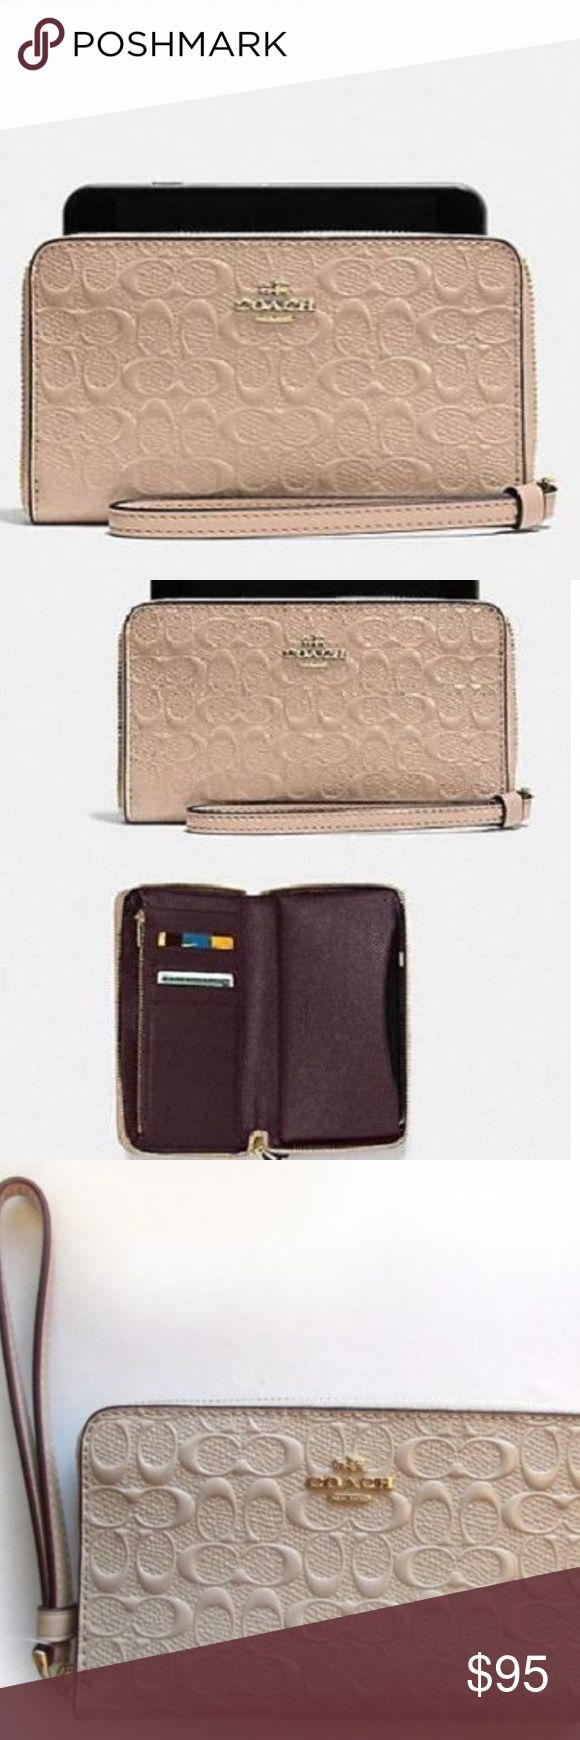 """Coach 57469 - Debossed Phone Wallet Wristlet COACH 57469 ~ DEBOSSED Phone Wallet WRISTLET ~ PLATINUM Tan Patent Leather ~ NWT  Brand New with Tags Patent Leather debossed w/ Signature C Full Zip Around Closure Light Gold Tone Hardware 6 Credit Card Slots Inside multi-function and phone pockets Zip Coin Pocket 6.25"""" x 3.75"""" Stored in Smoke-Free Environment Coach Bags Wallets"""